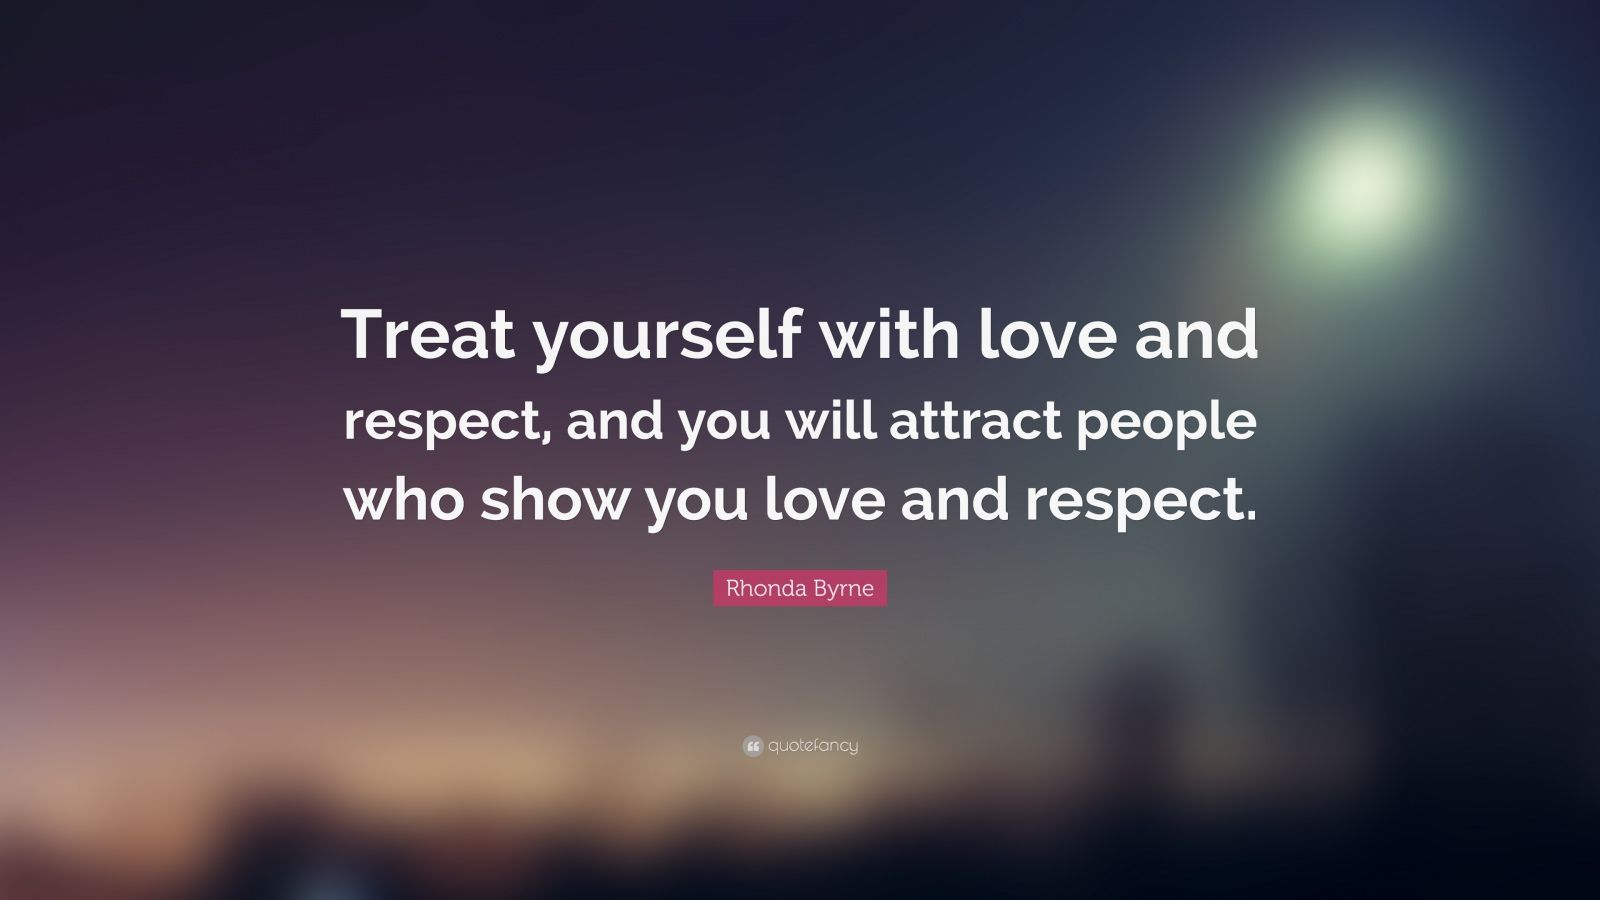 """Rhonda Byrne Quote: """"Treat yourself with love and respect, and you will attract people who show you love and respect."""""""